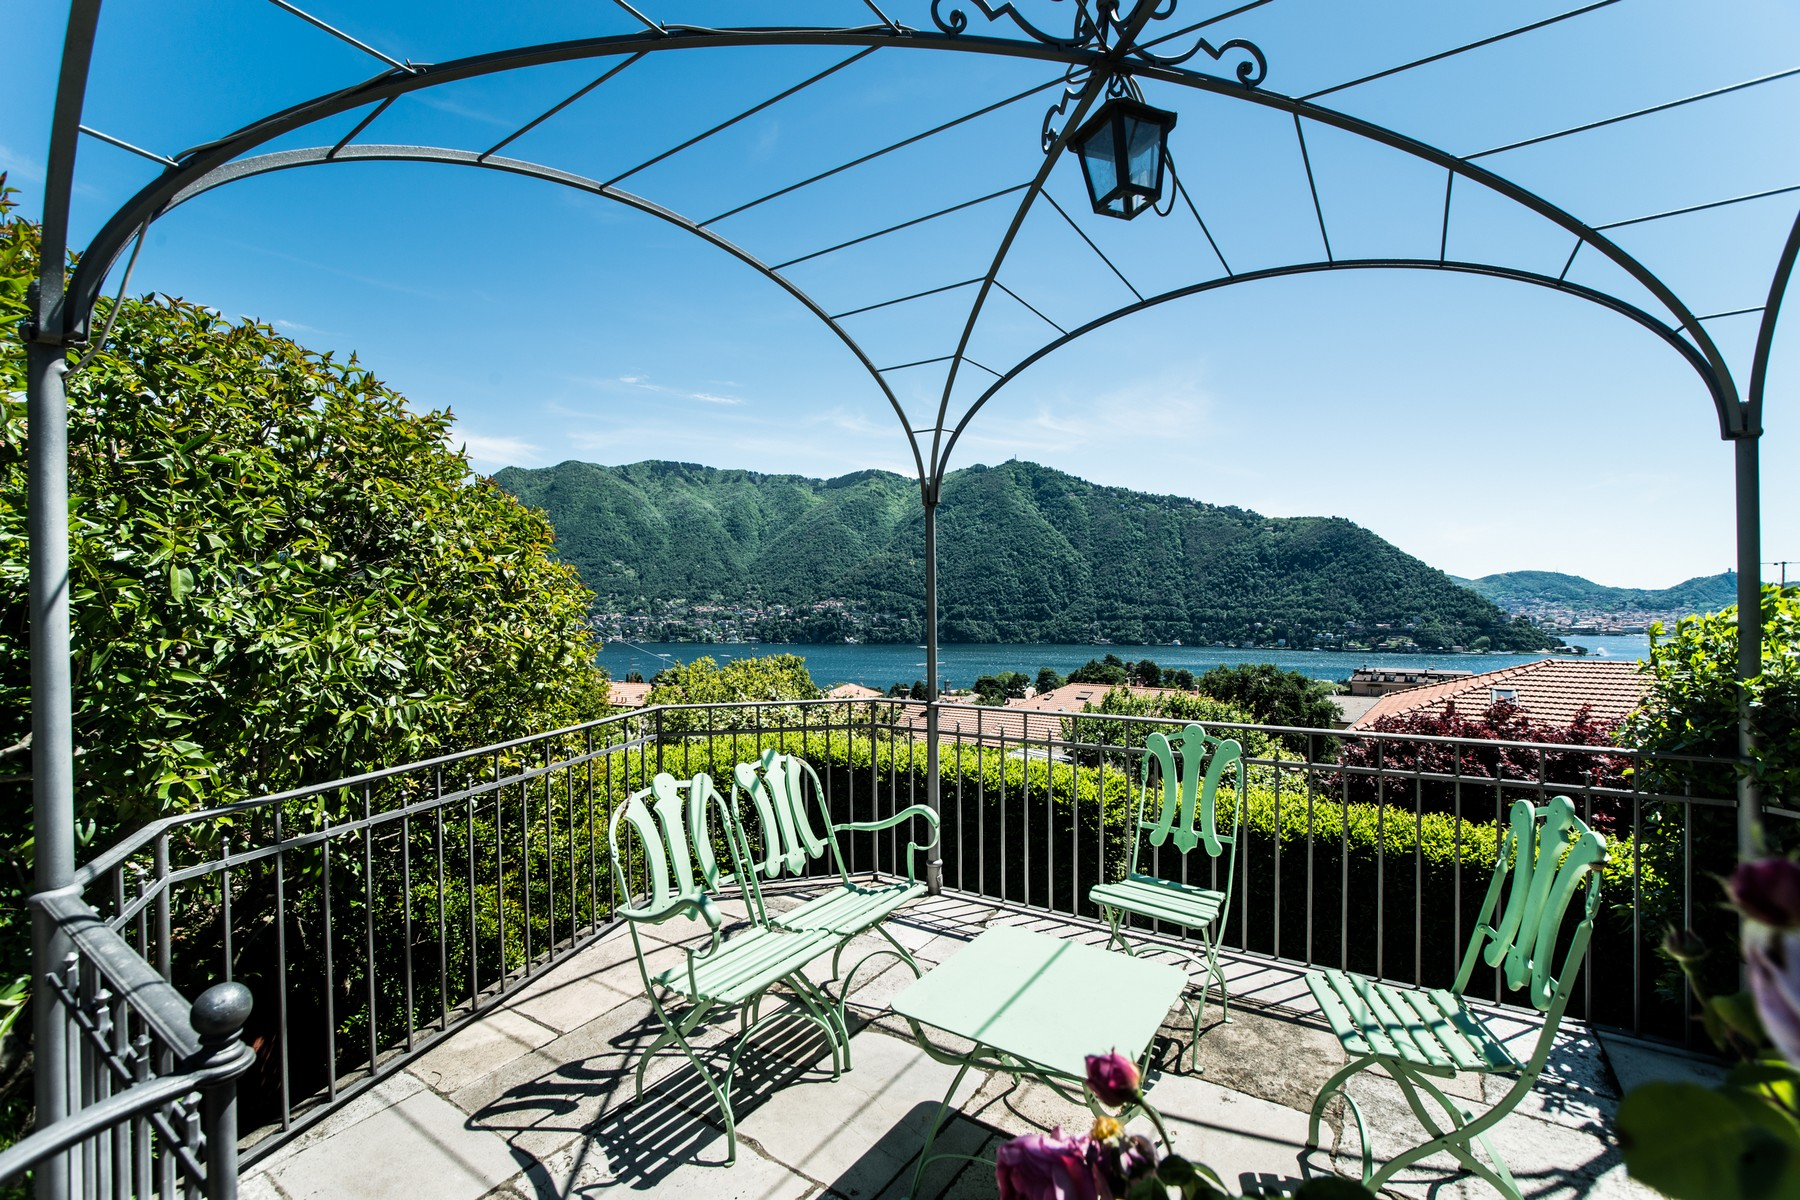 Single Family Home for Sale at Gorgeous villa with dependance overlooking Lake Como Via Vittorio Veneto Cernobbio, Como 22012 Italy